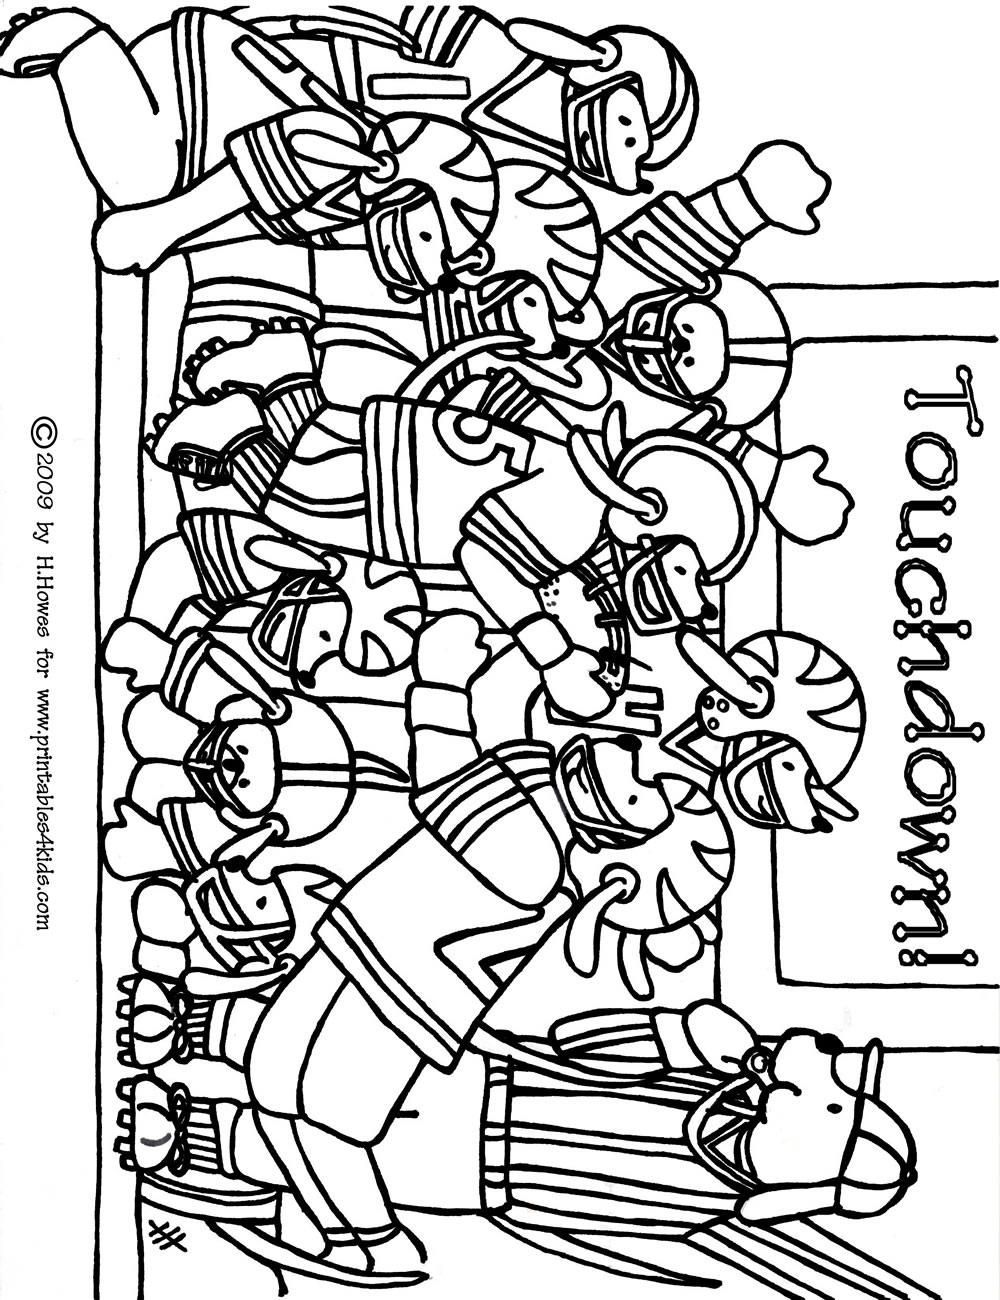 Football coloring pages printable coloring home for College football coloring pages